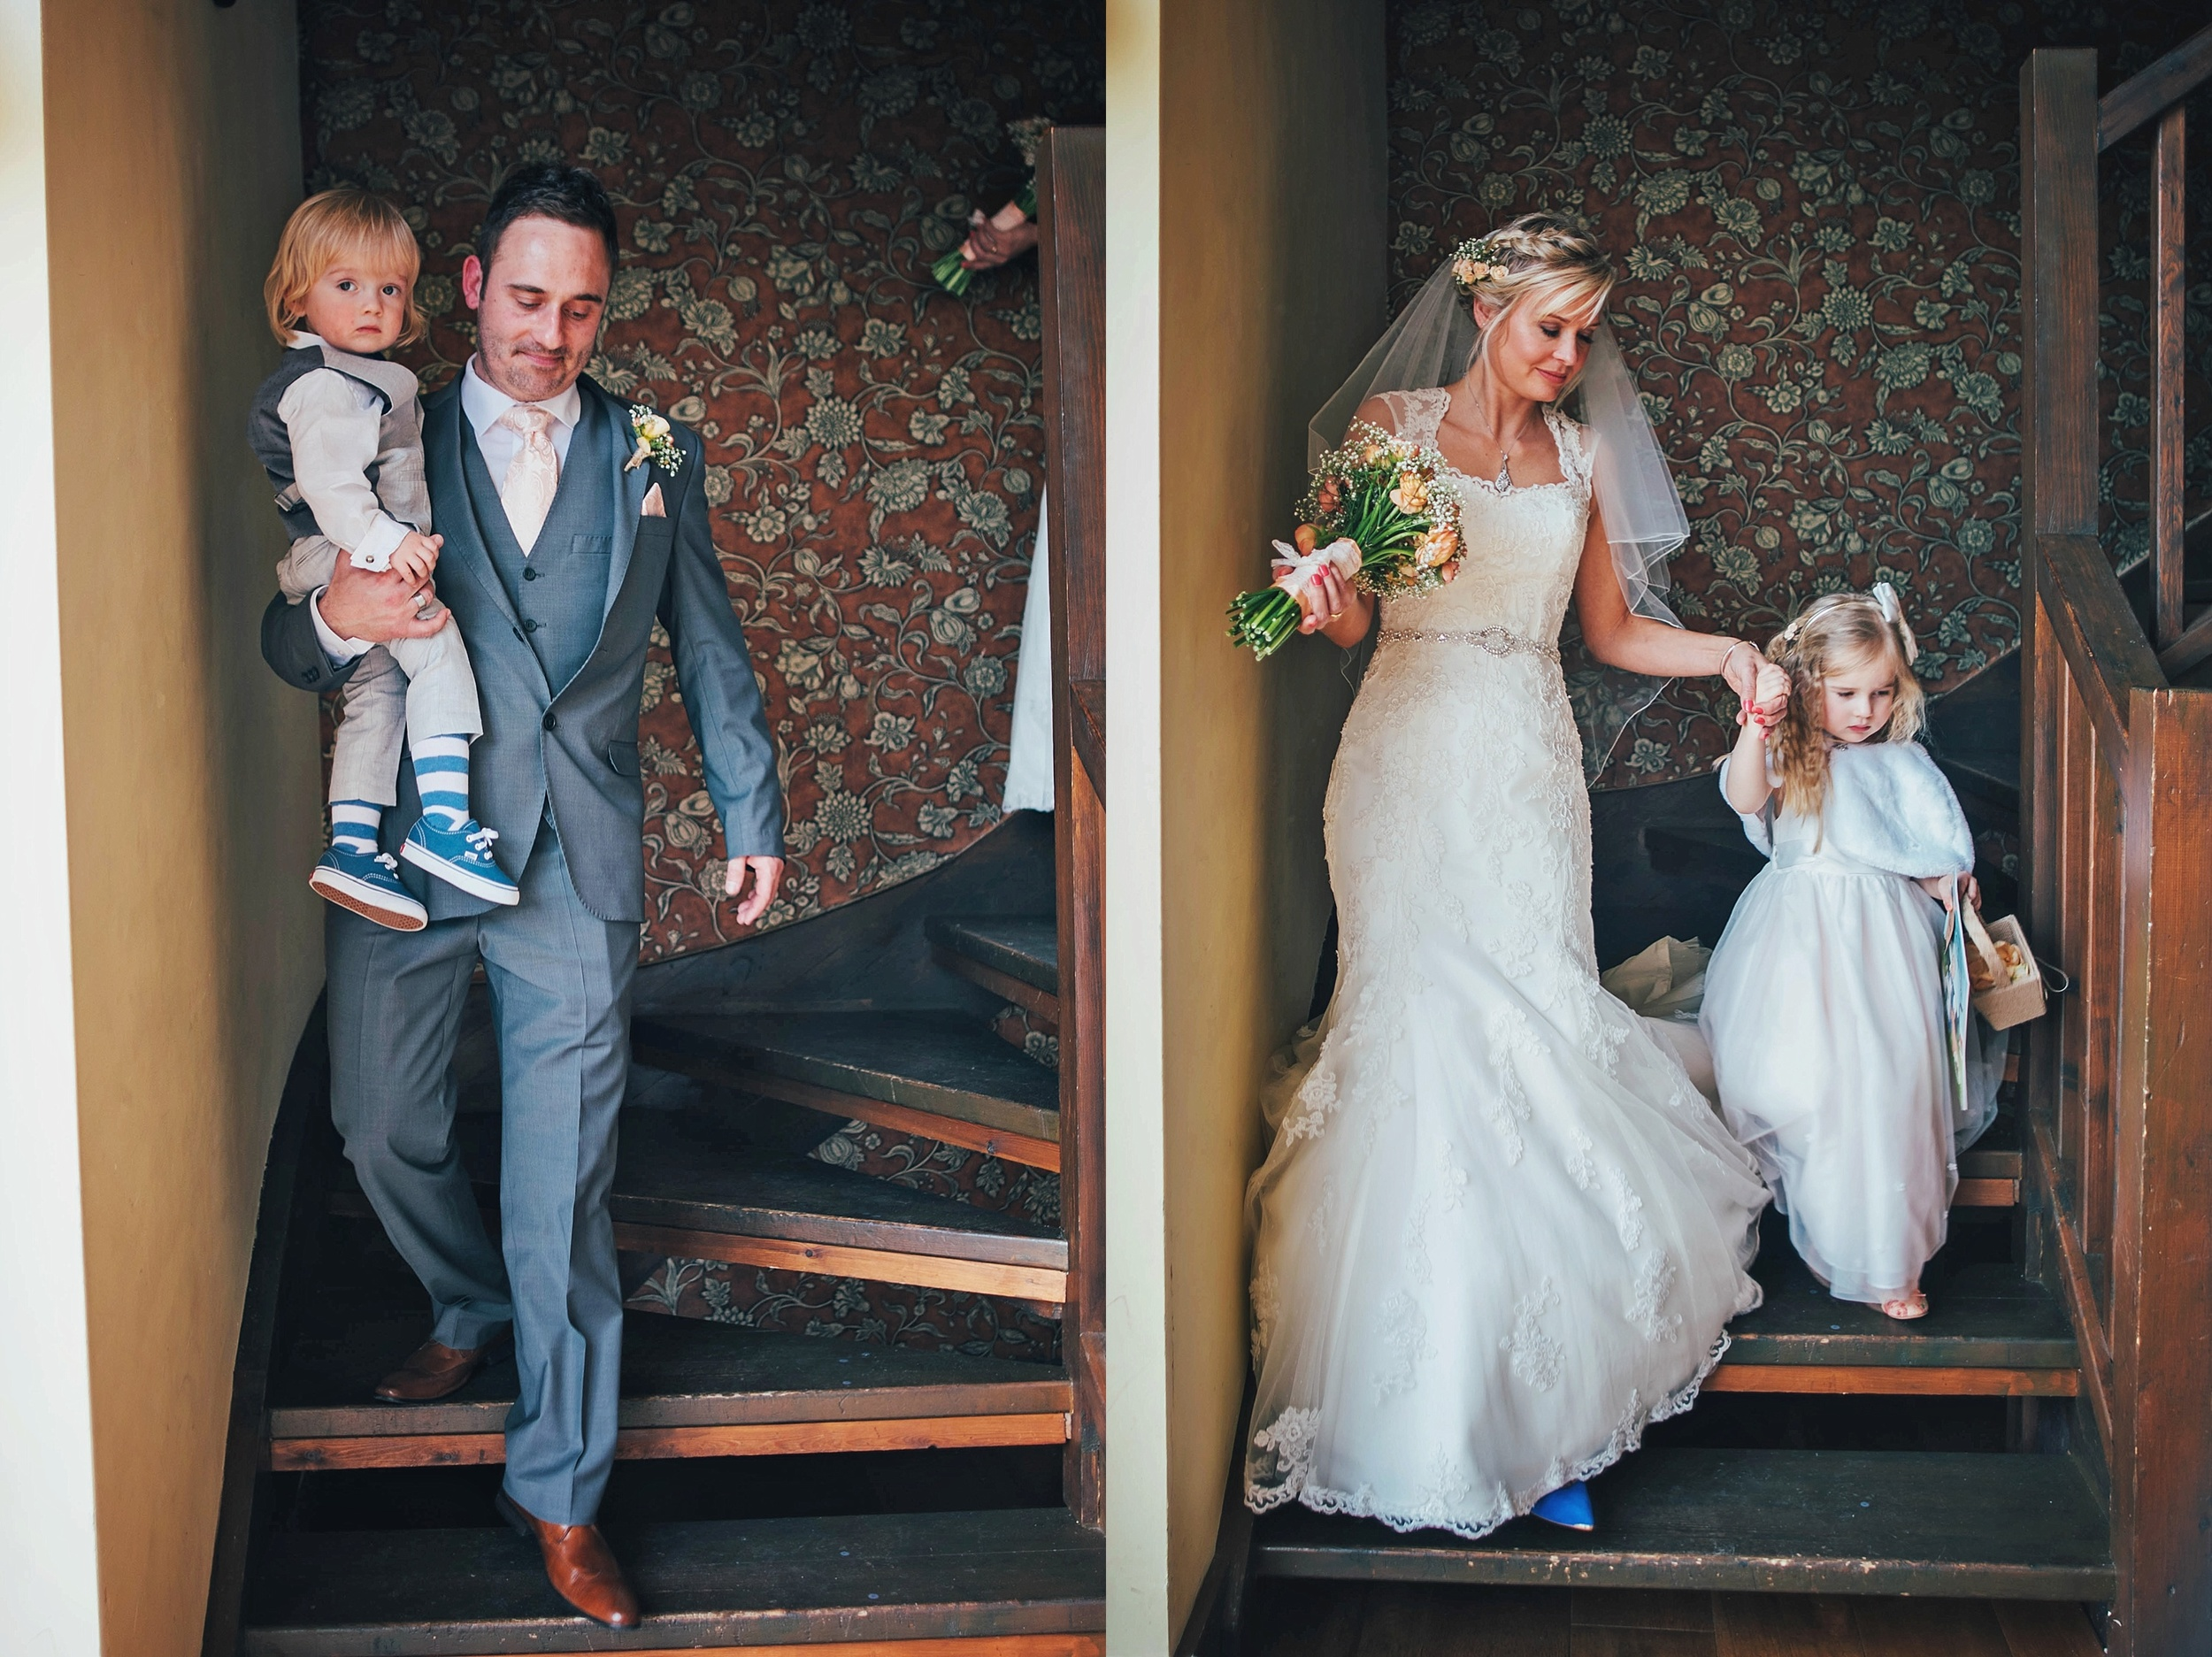 Rustic Barn Easter Wedding The White Heart Great Yeldham Essex UK Documentary Wedding Photographer